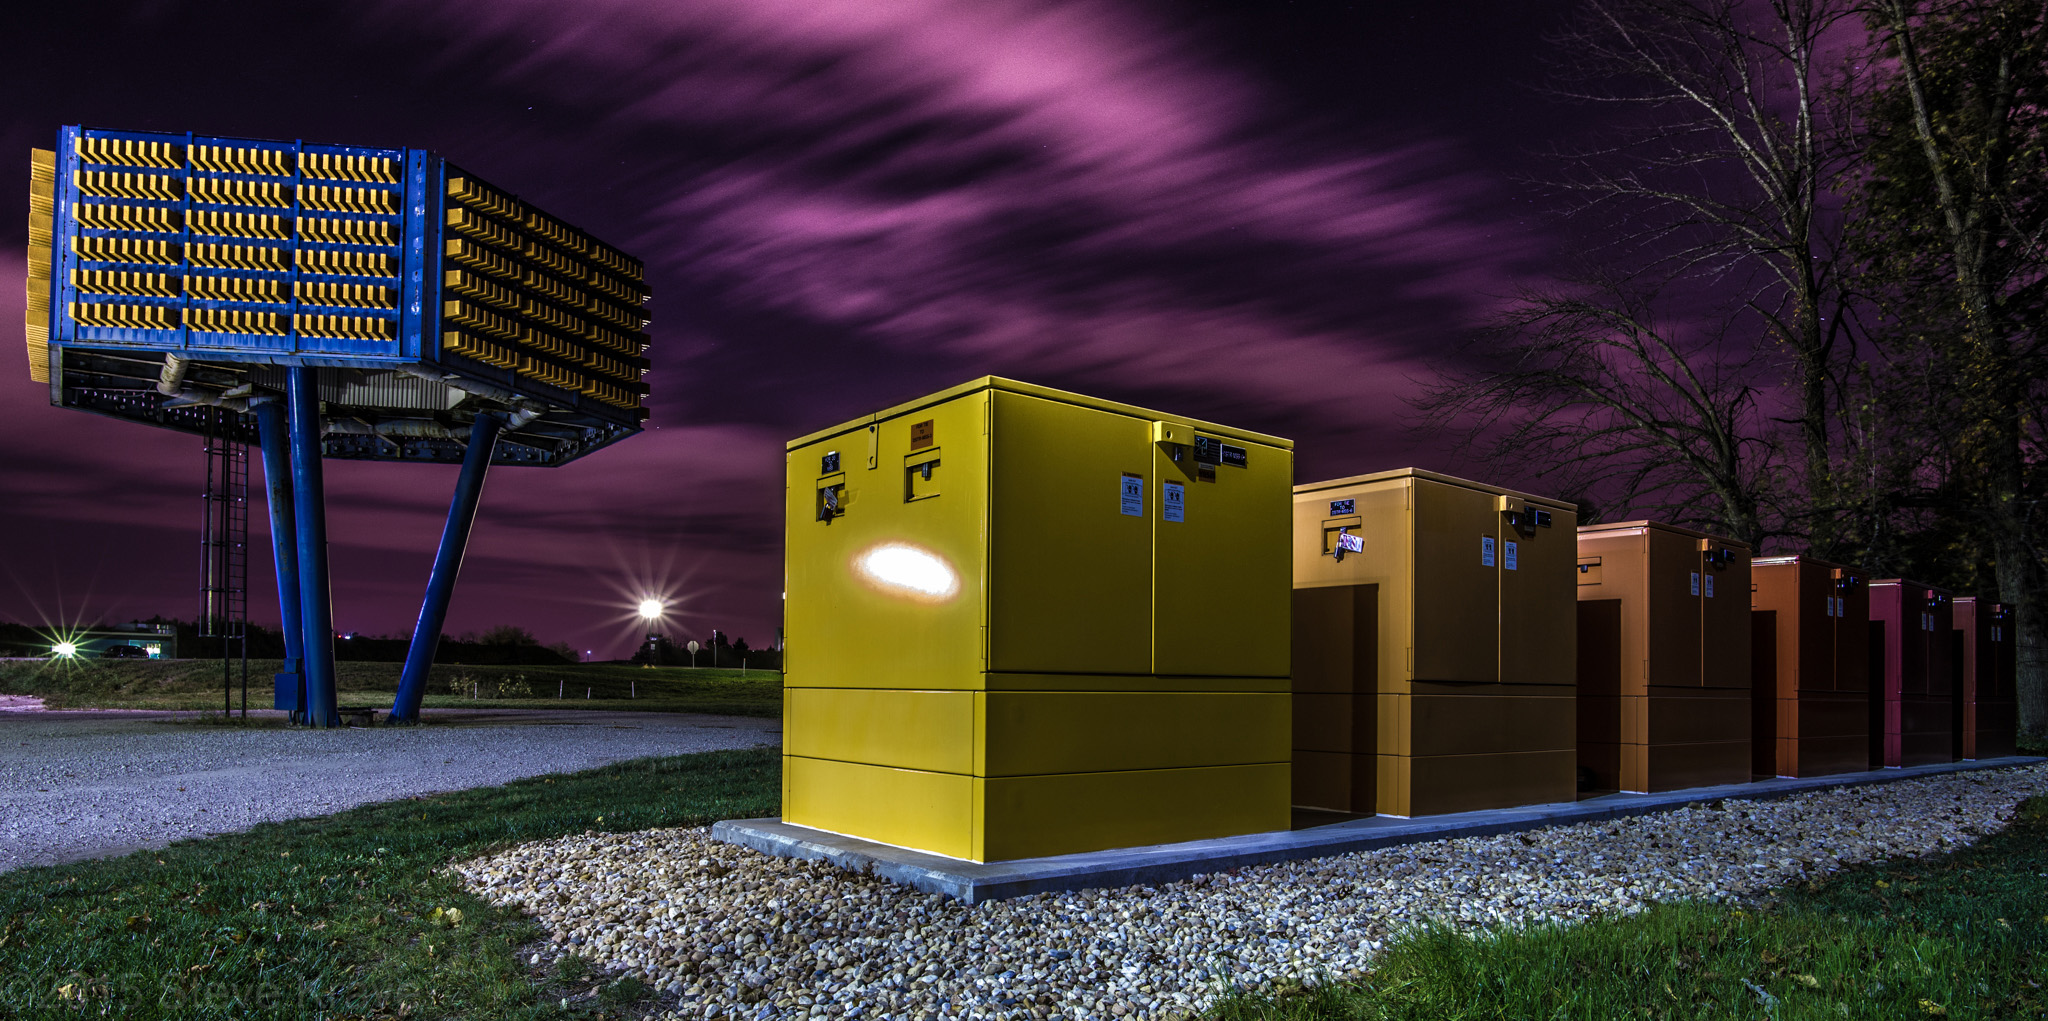 The capacitor tree and power switches, dressed in warm colors. Photo: Steve Krave, TD